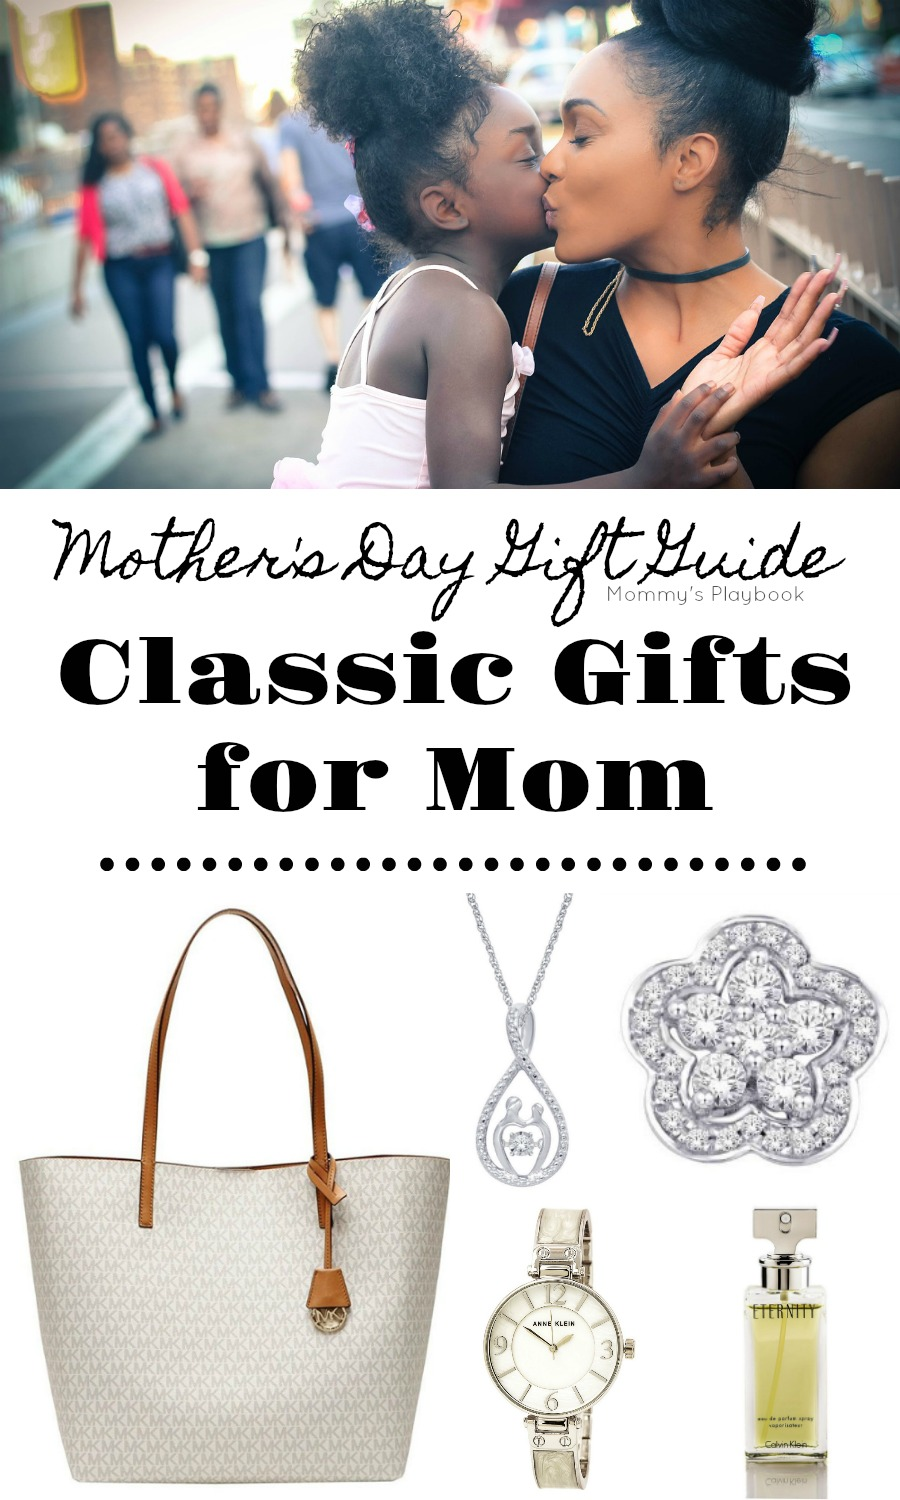 Mother's Day Gift Guide: Classic Gifts for Mom #MothersDay #MothersDayGuide #MothersDayGifts #MomGifts